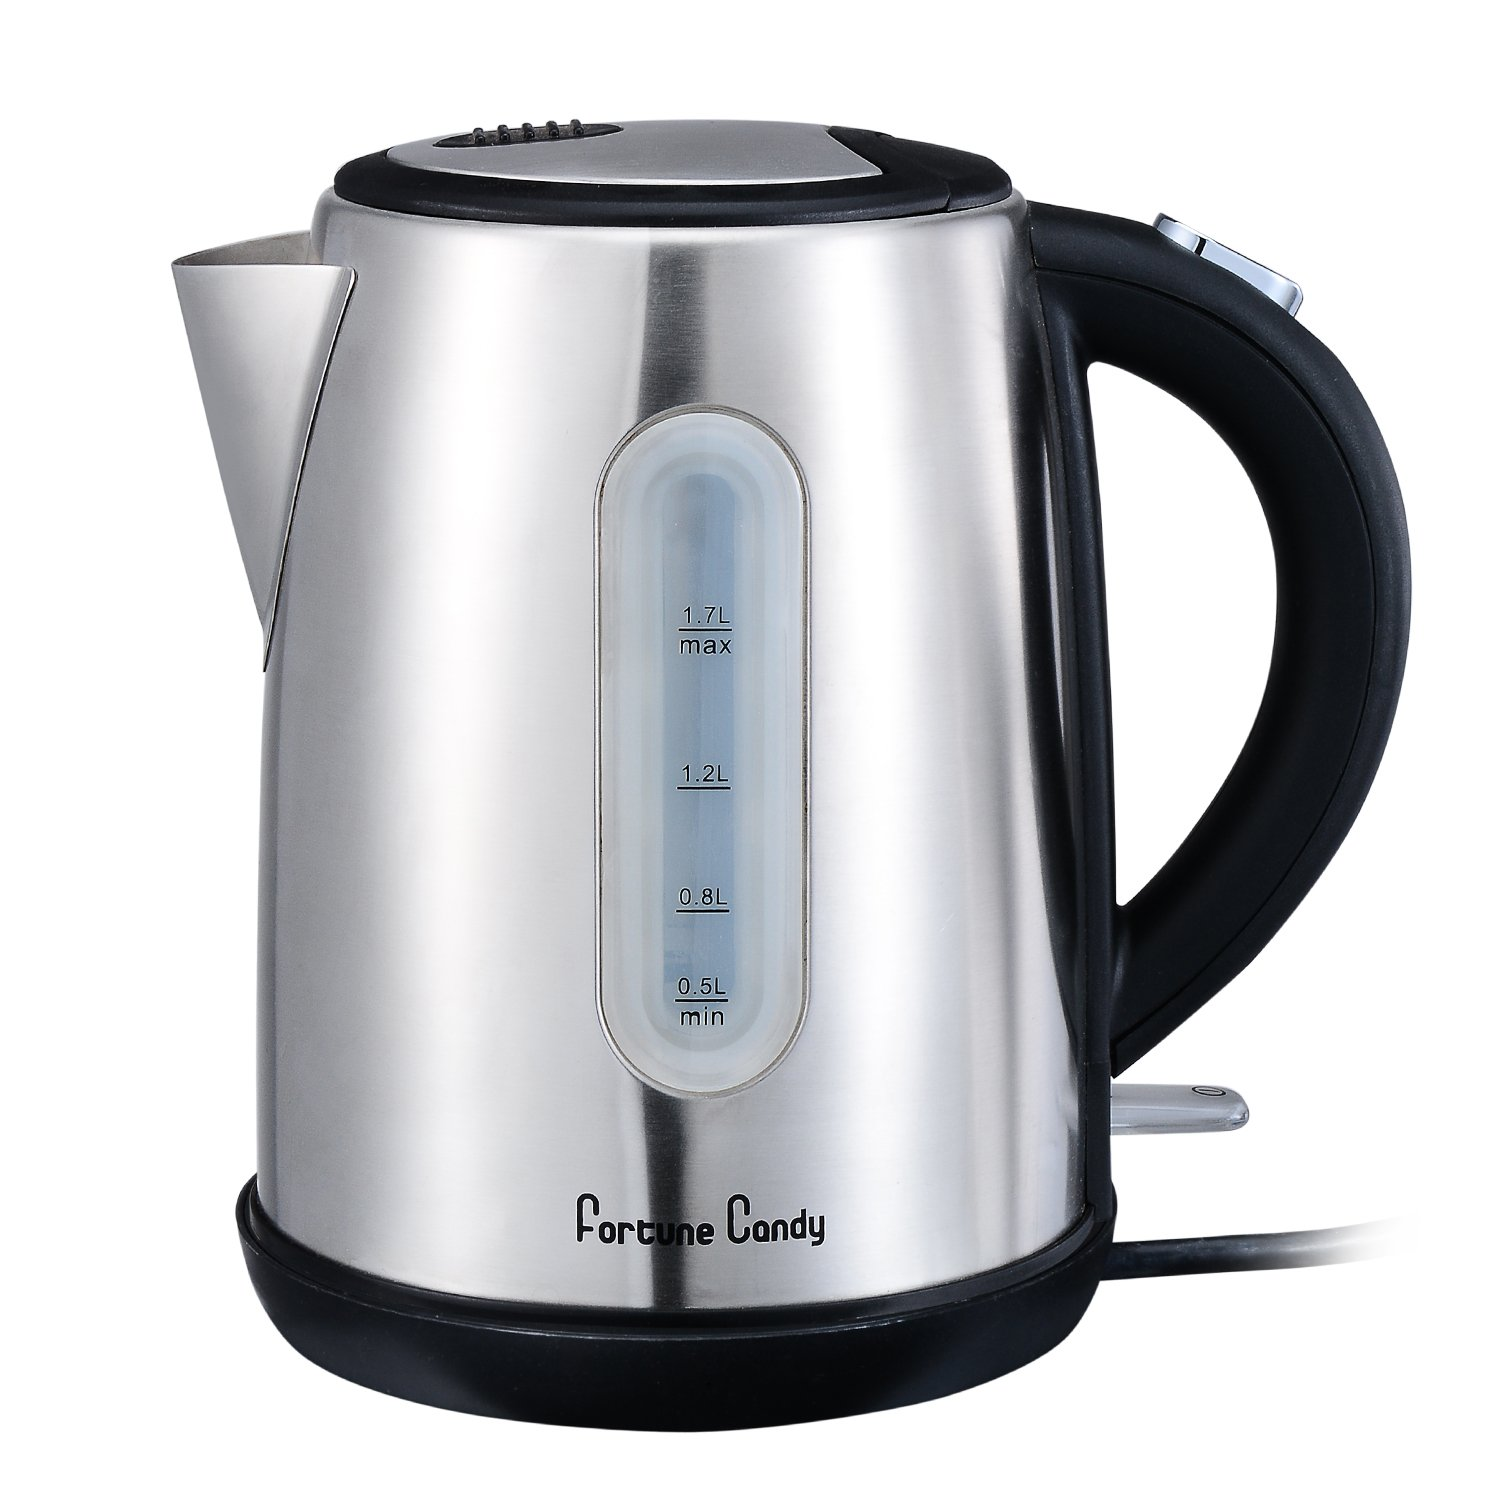 Fortune Candy Stainless Steel Otter Controller Cordless Electric Kettle 1500-Watt with Auto Shut Off (1.7L)